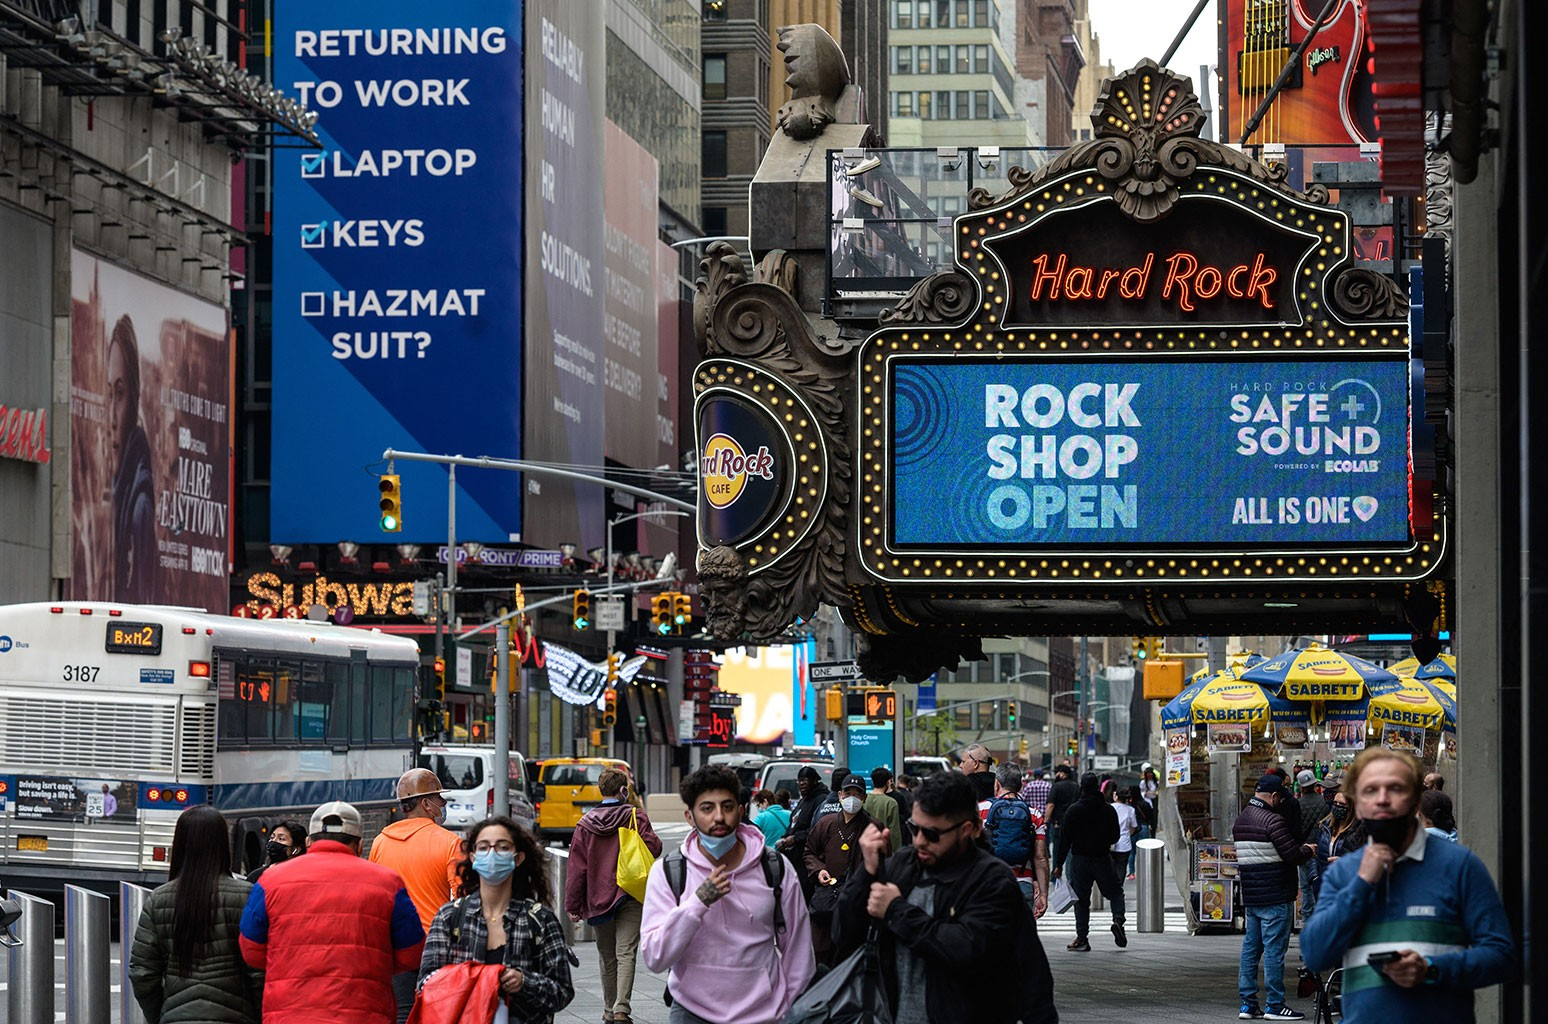 People walk past the Hard Rock Cafe on May 3, 2021 in New York City.